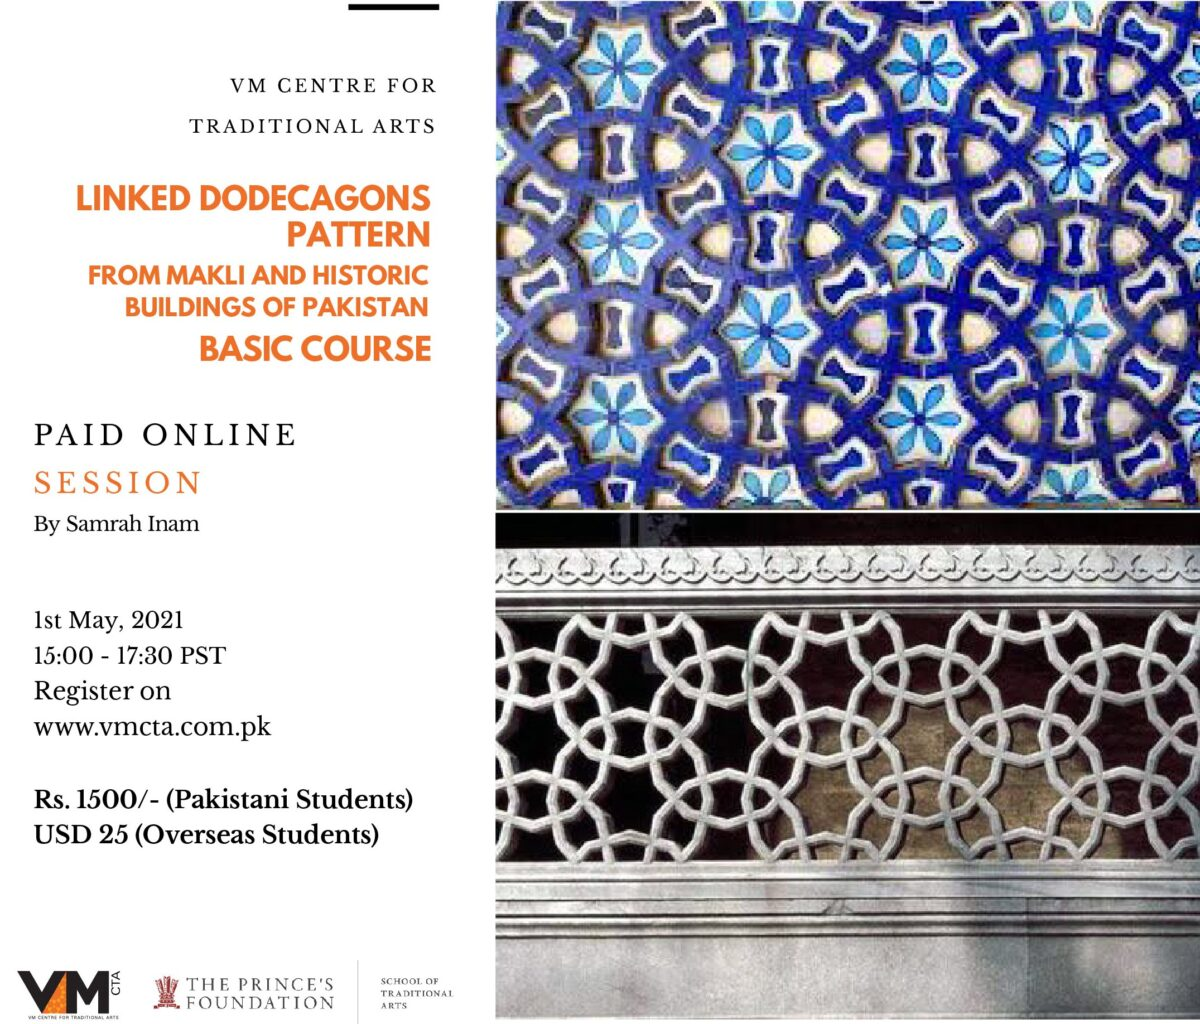 Linked Dodecagons Pattern from Makli and Historic buildings of Pakistan